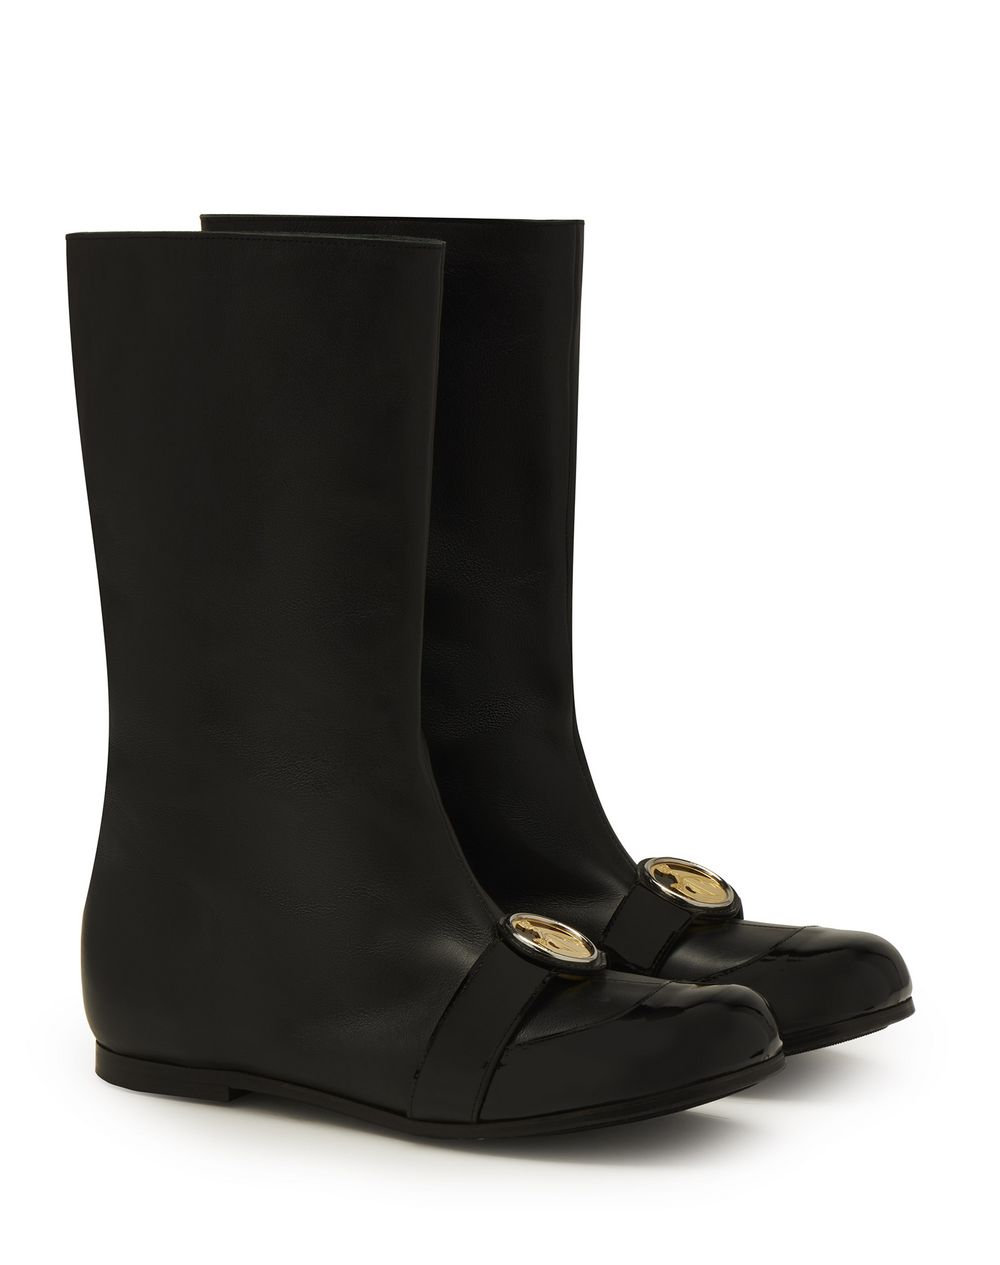 JANE BOOTS IN GRAINED CALFSKIN LEATHER - Lanvin